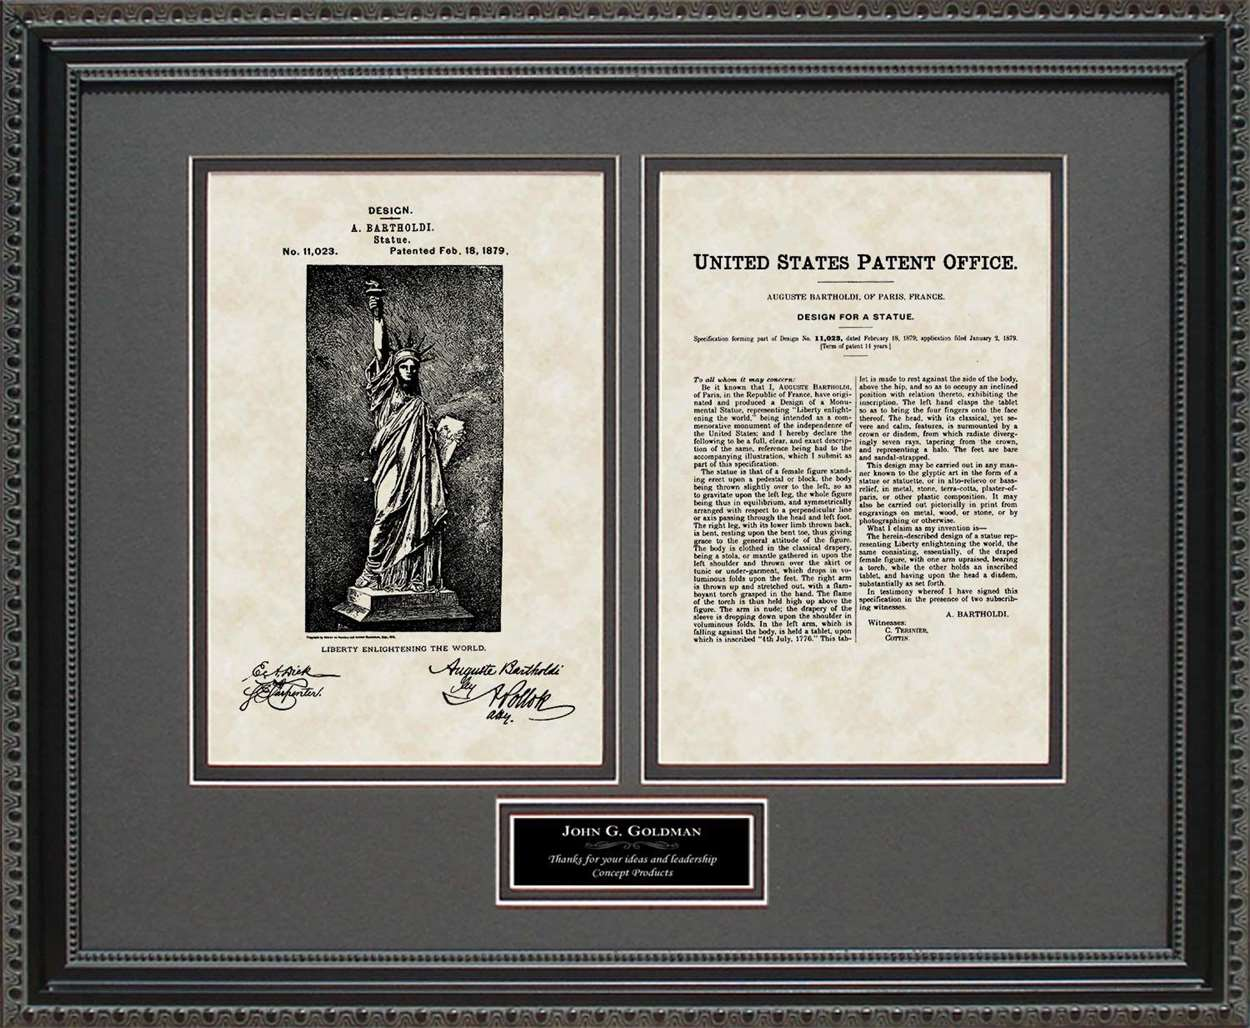 Personalized Statue of Liberty Patent, Art & Copy, Bartholdi, 1879